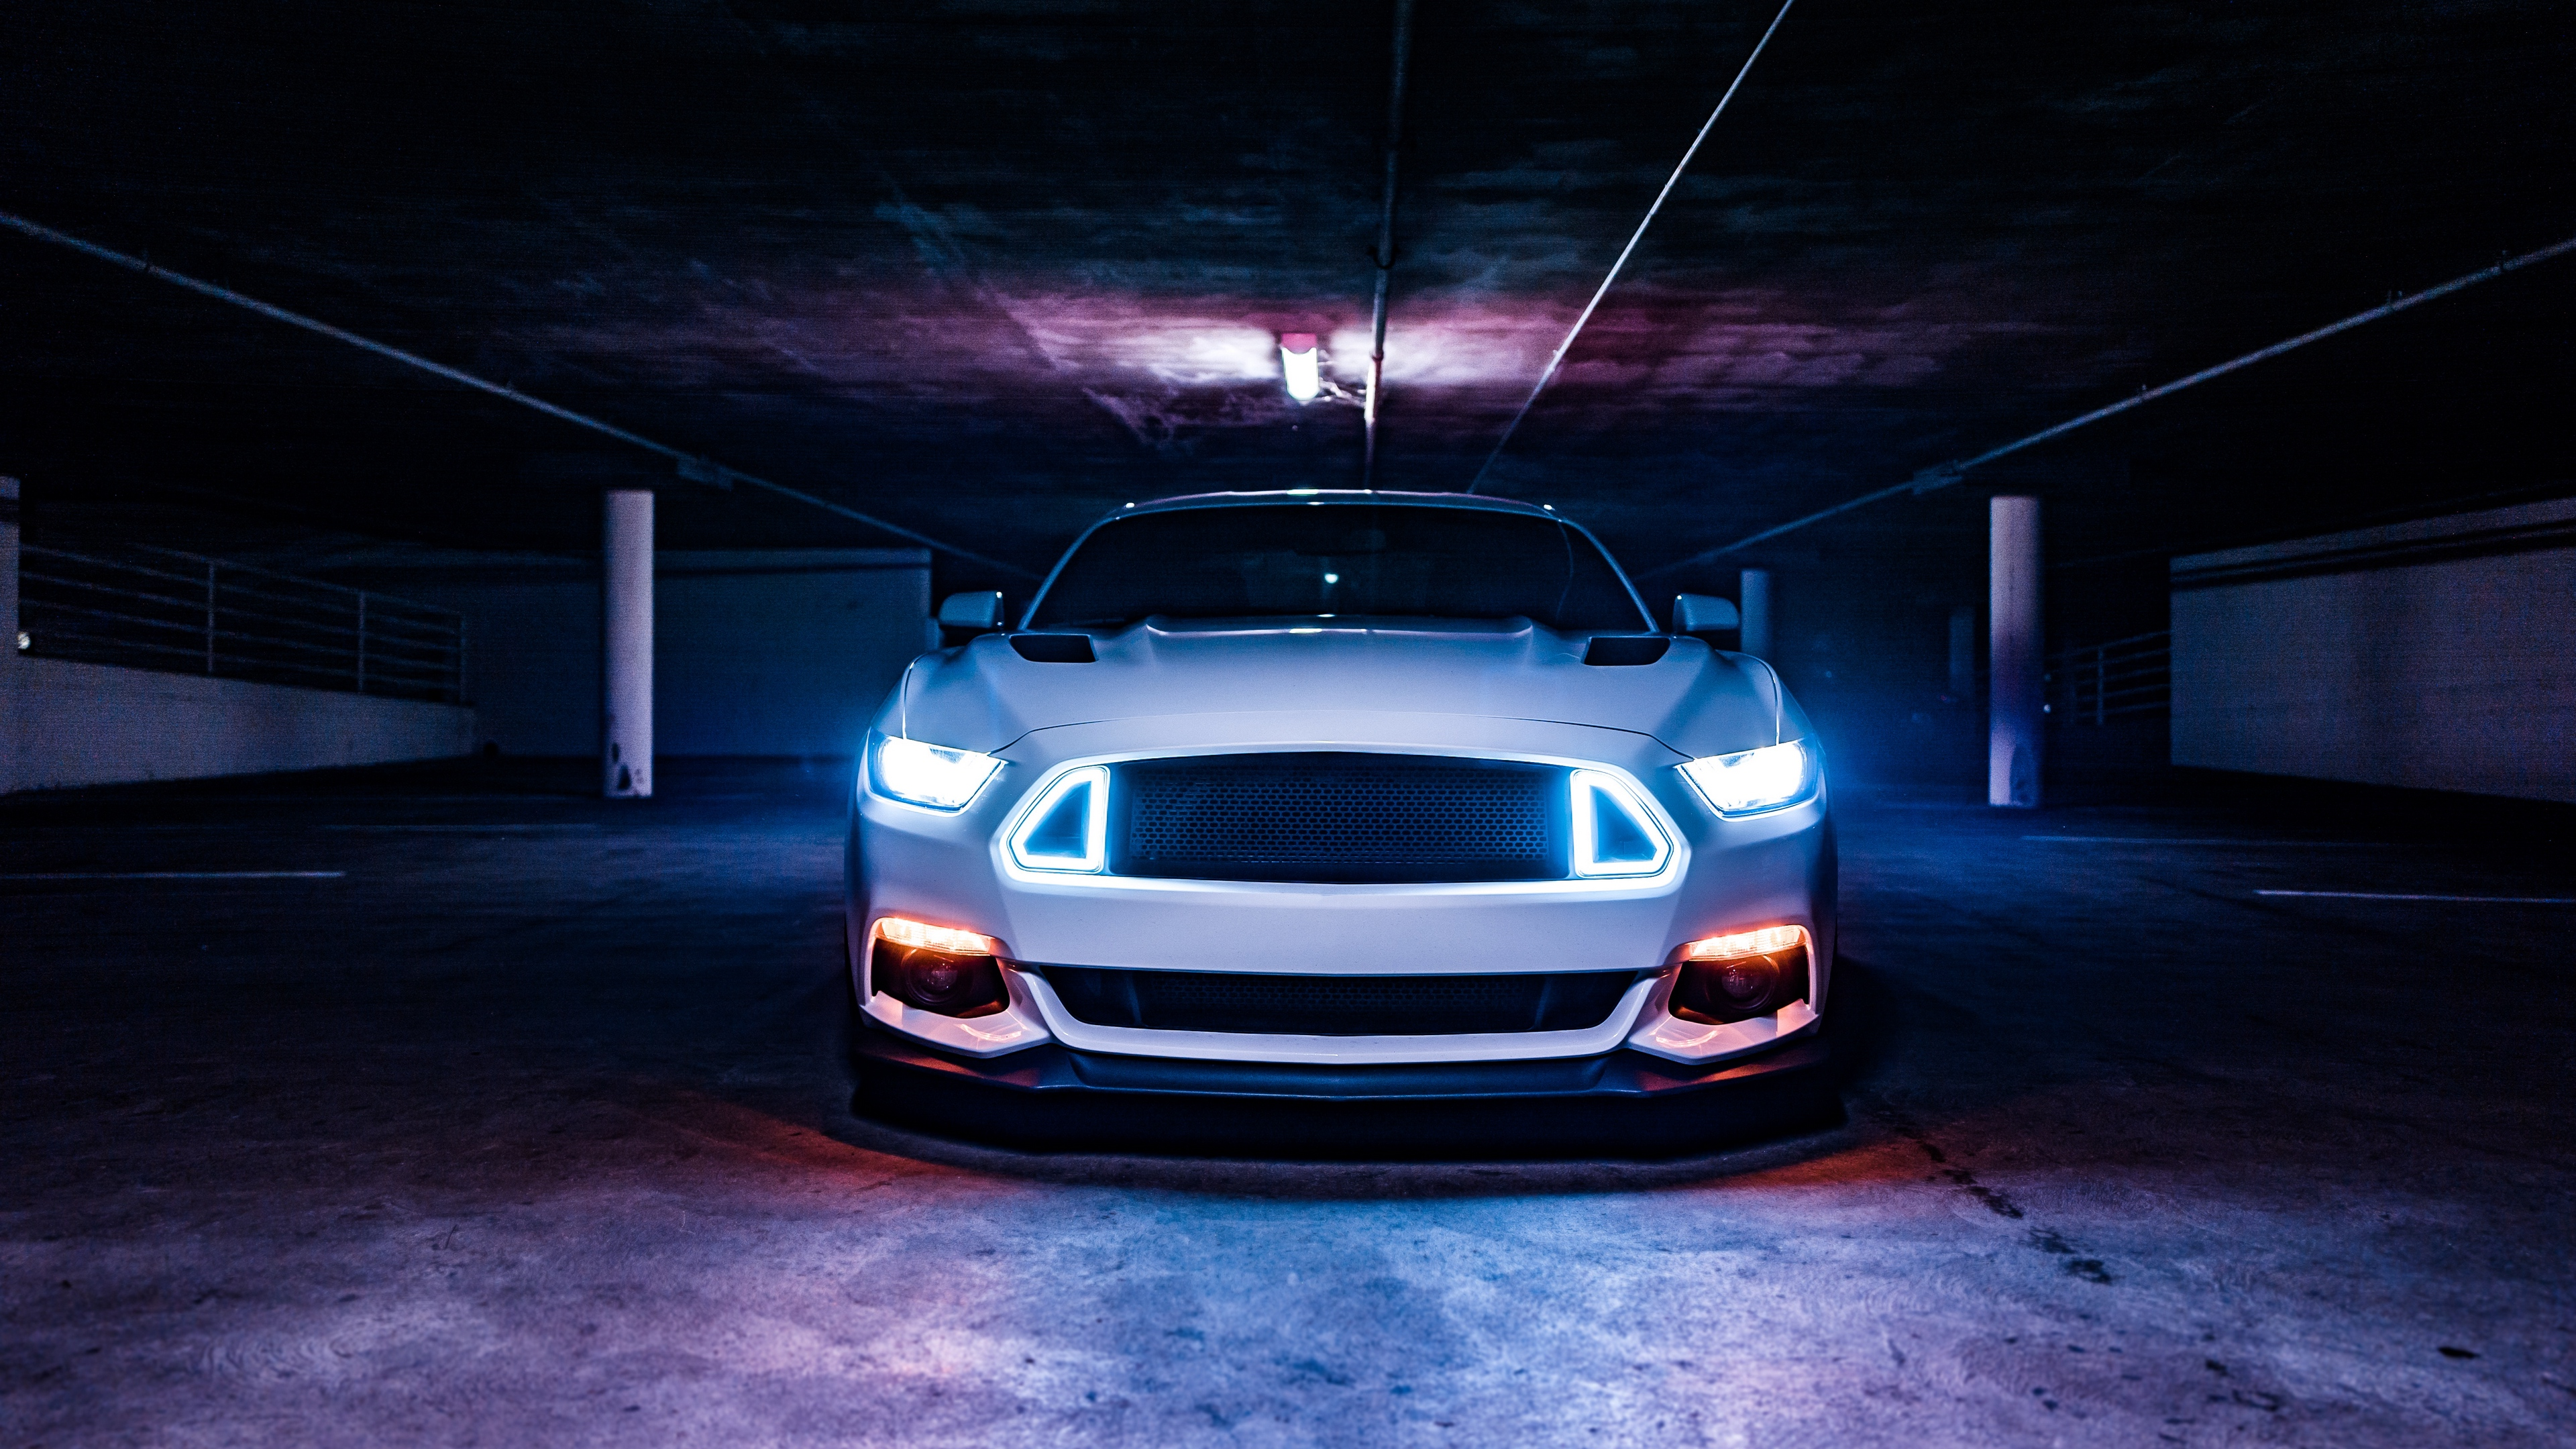 shelby mustang ford mustang ford sports car 4k 1538935199 - shelby mustang, ford mustang, ford, sports car 4k - shelby mustang, ford mustang, Ford